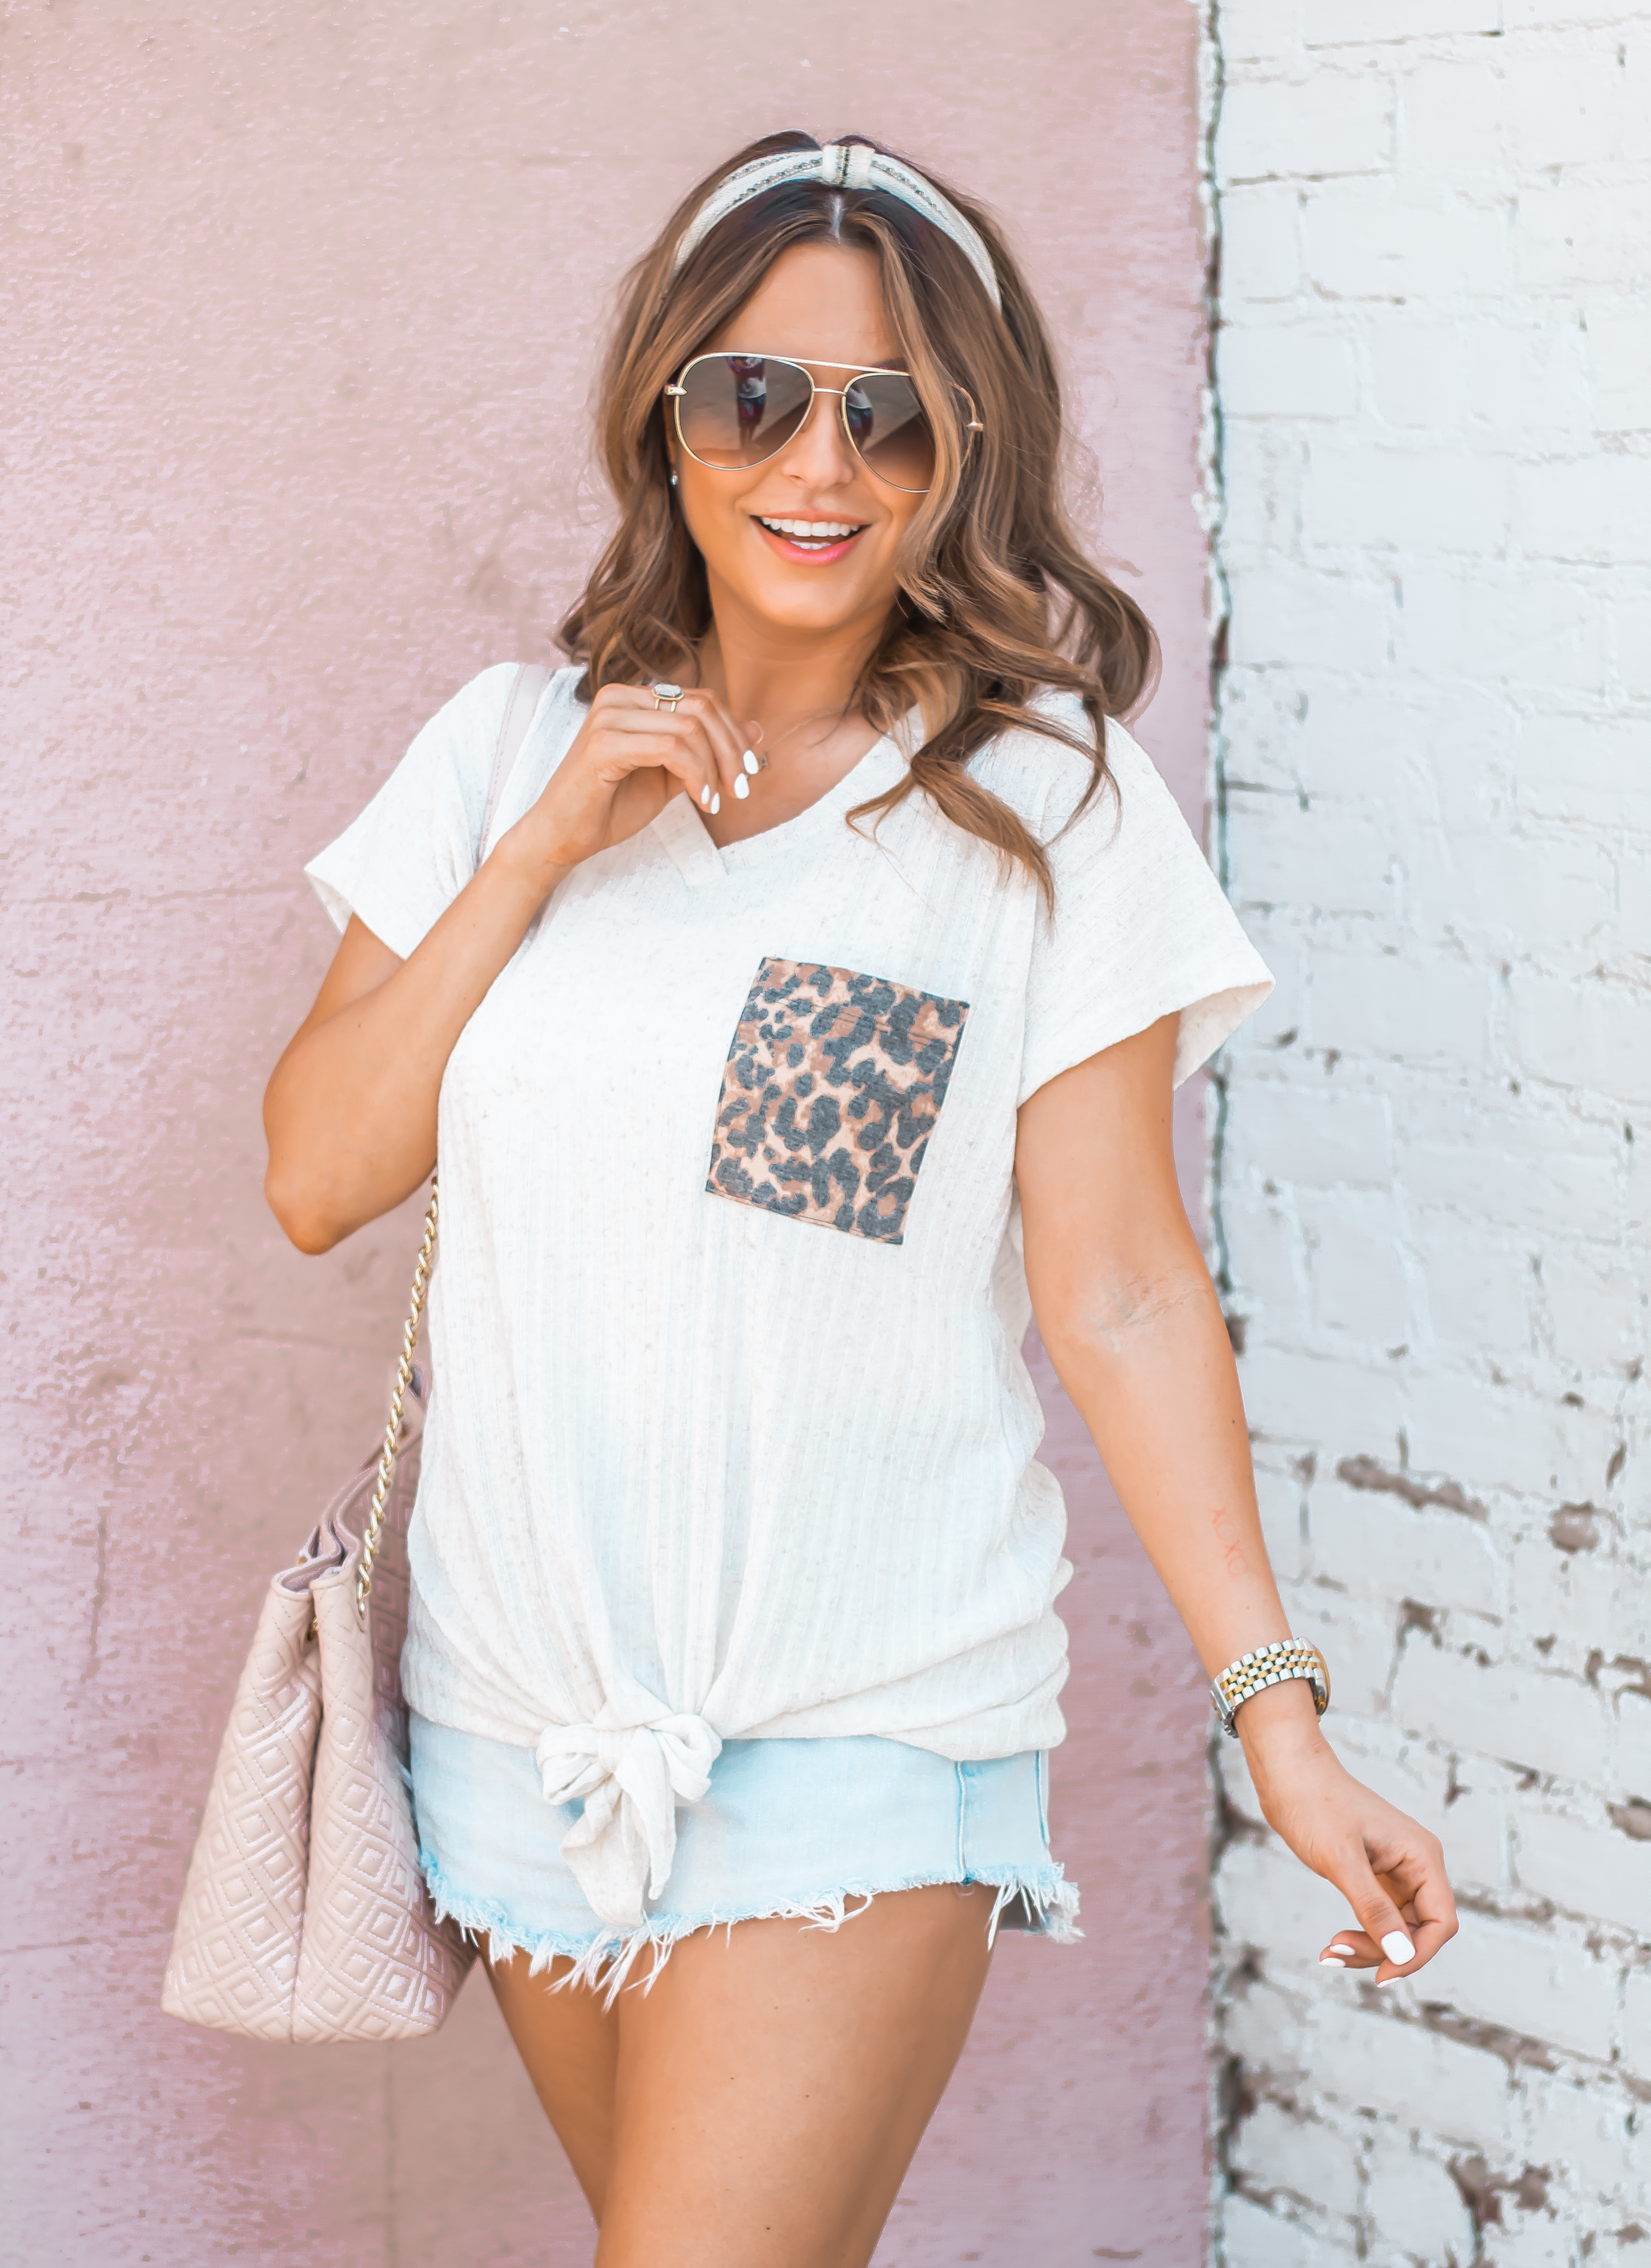 Women's Fashion-Summer Fashion-Summer Outfit Inspiration-Sabby Style-Omaha Blogger-Leopard Pocket Top-The Style Bar Boutique-Cutoff Shorts-Espadrille Wedges-Marc Fisher Wedges-Tory Burch Fleming-Quay Sunglasses-Headband Trend-Omaha-Nebraska-Midwest Blogger-13